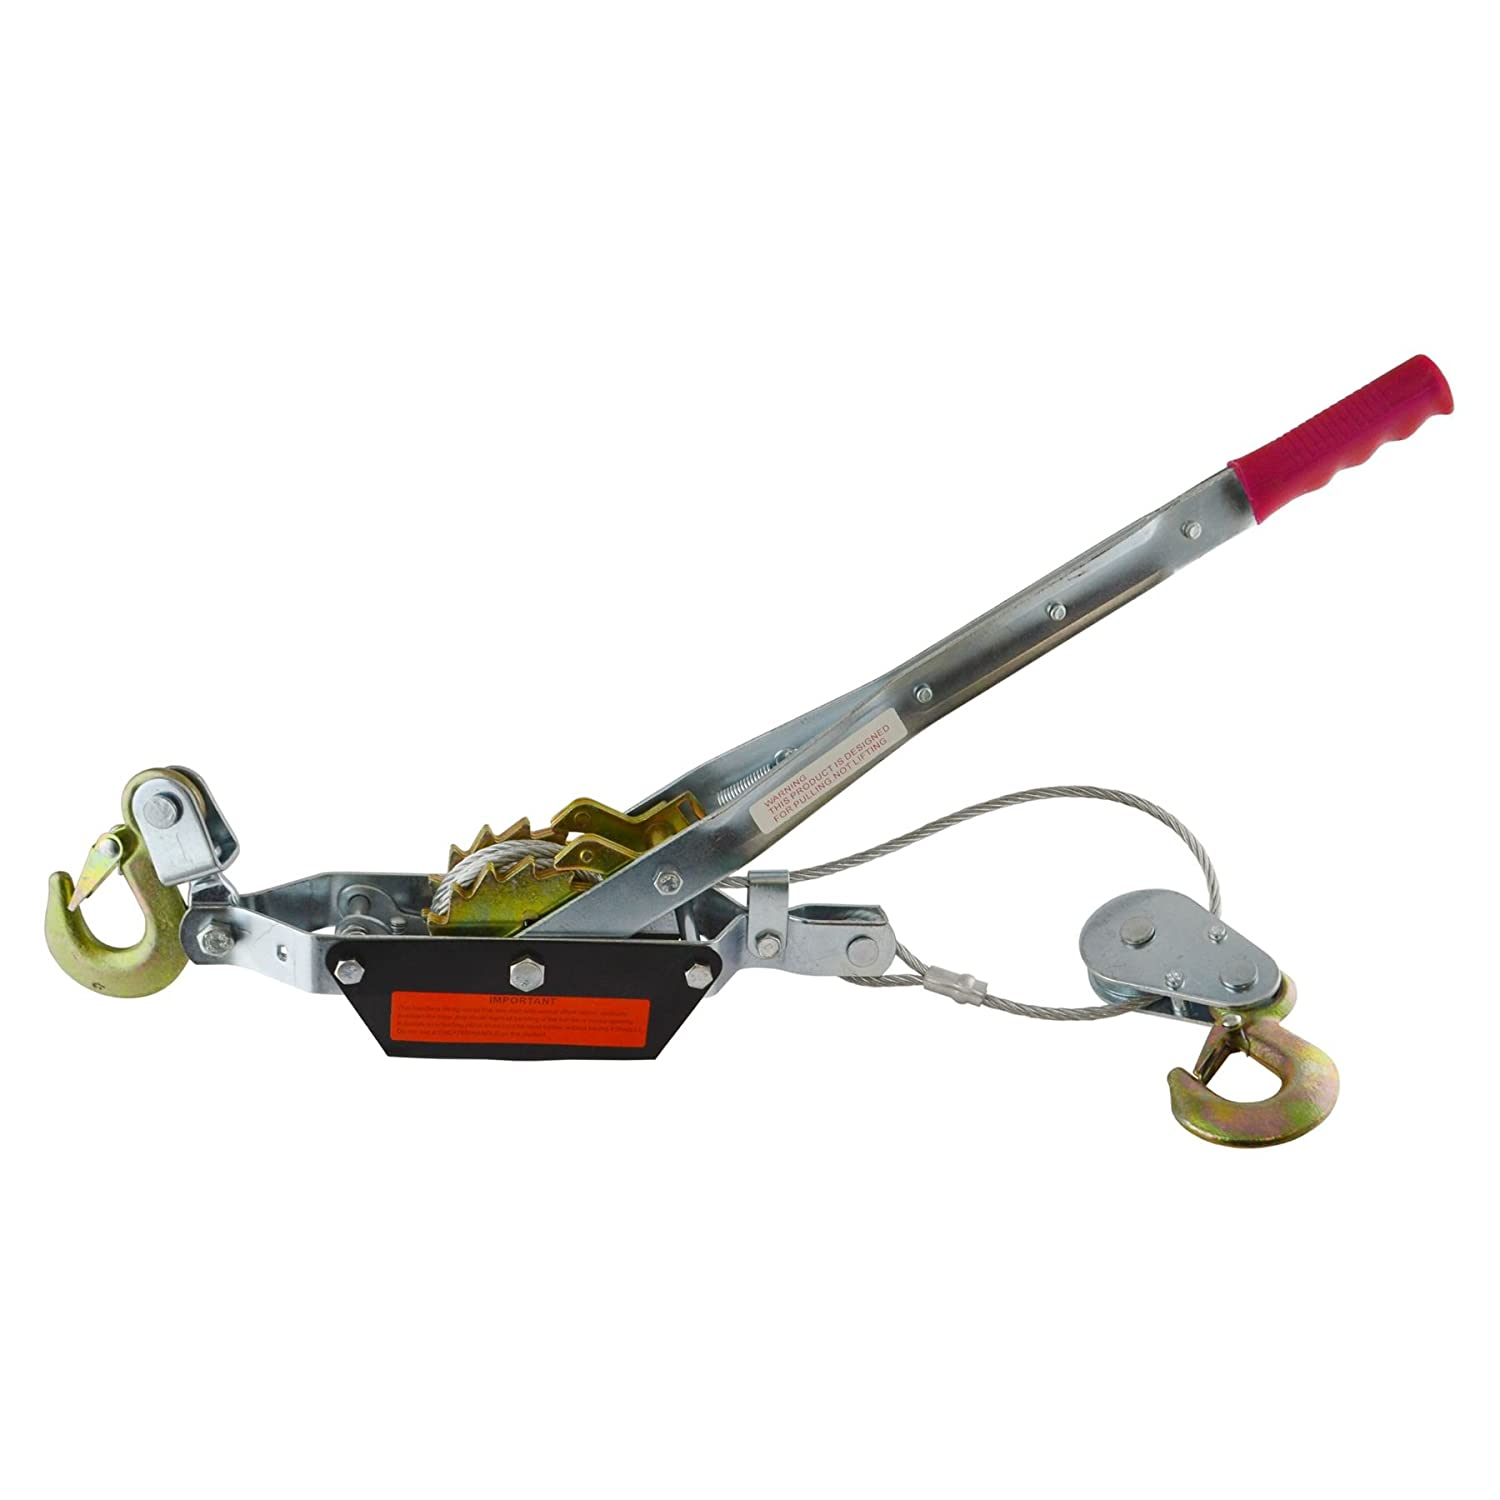 2 Ton Hand Power Wired Cable Puller Winch Turfer Pulley Soft Grip Handle TE817 AB Tools-Toolzone